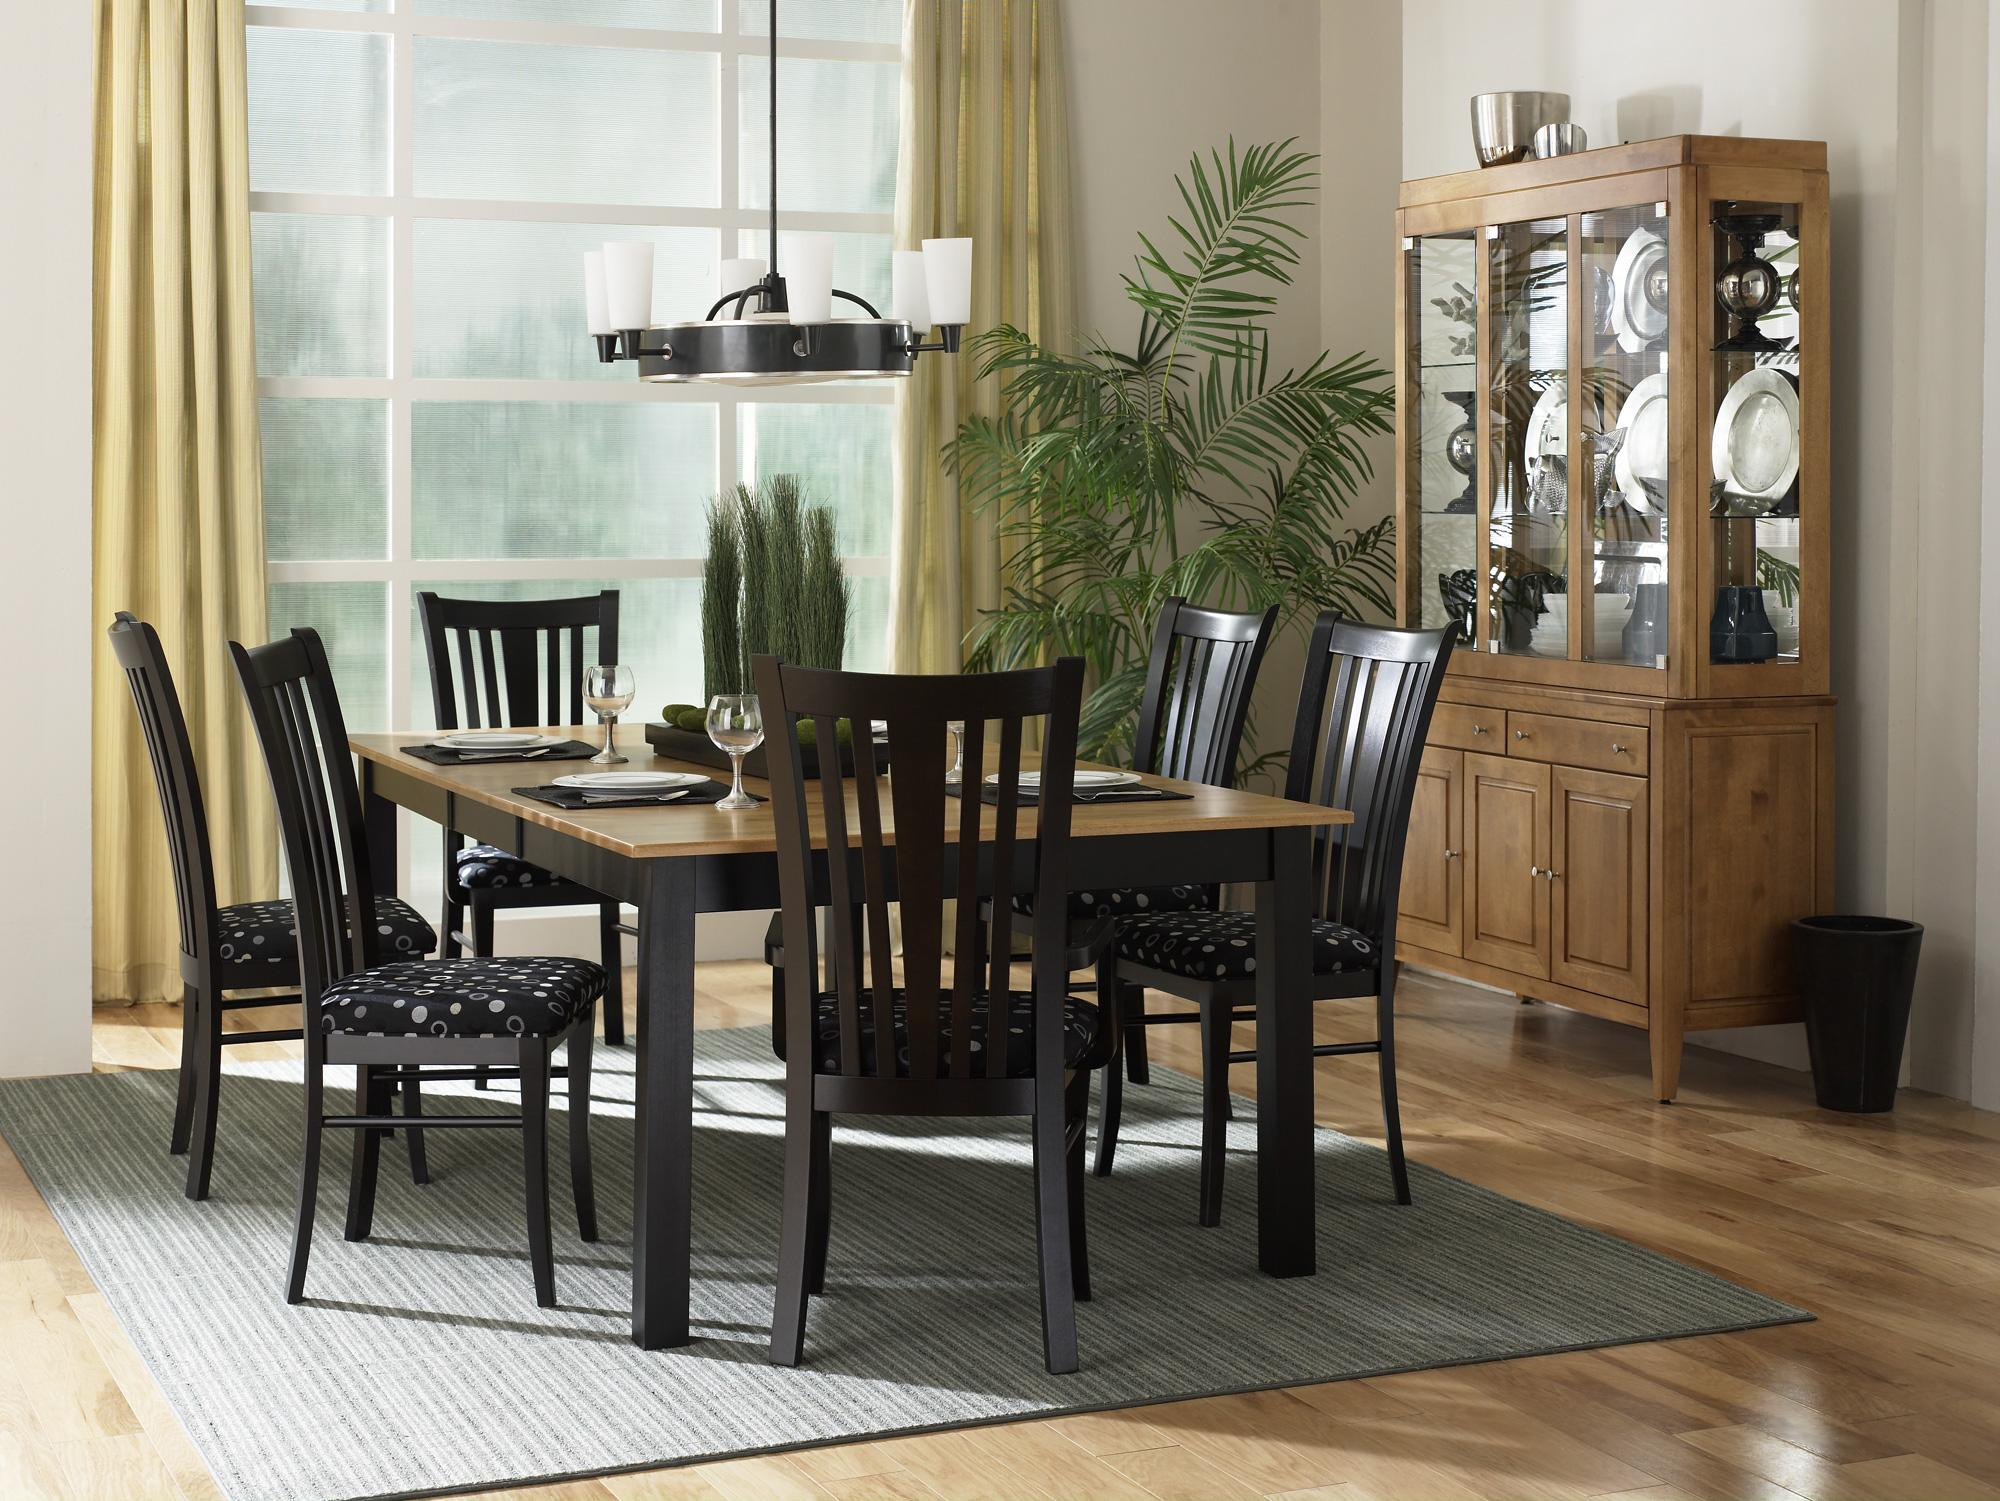 Canadel Custom Dining   Contemporary Customizable 7 Piece Rectangular Table  Set   Rotmans   Dining 7 (or More) Piece Set Worcester, Boston, MA,  Providence, ...